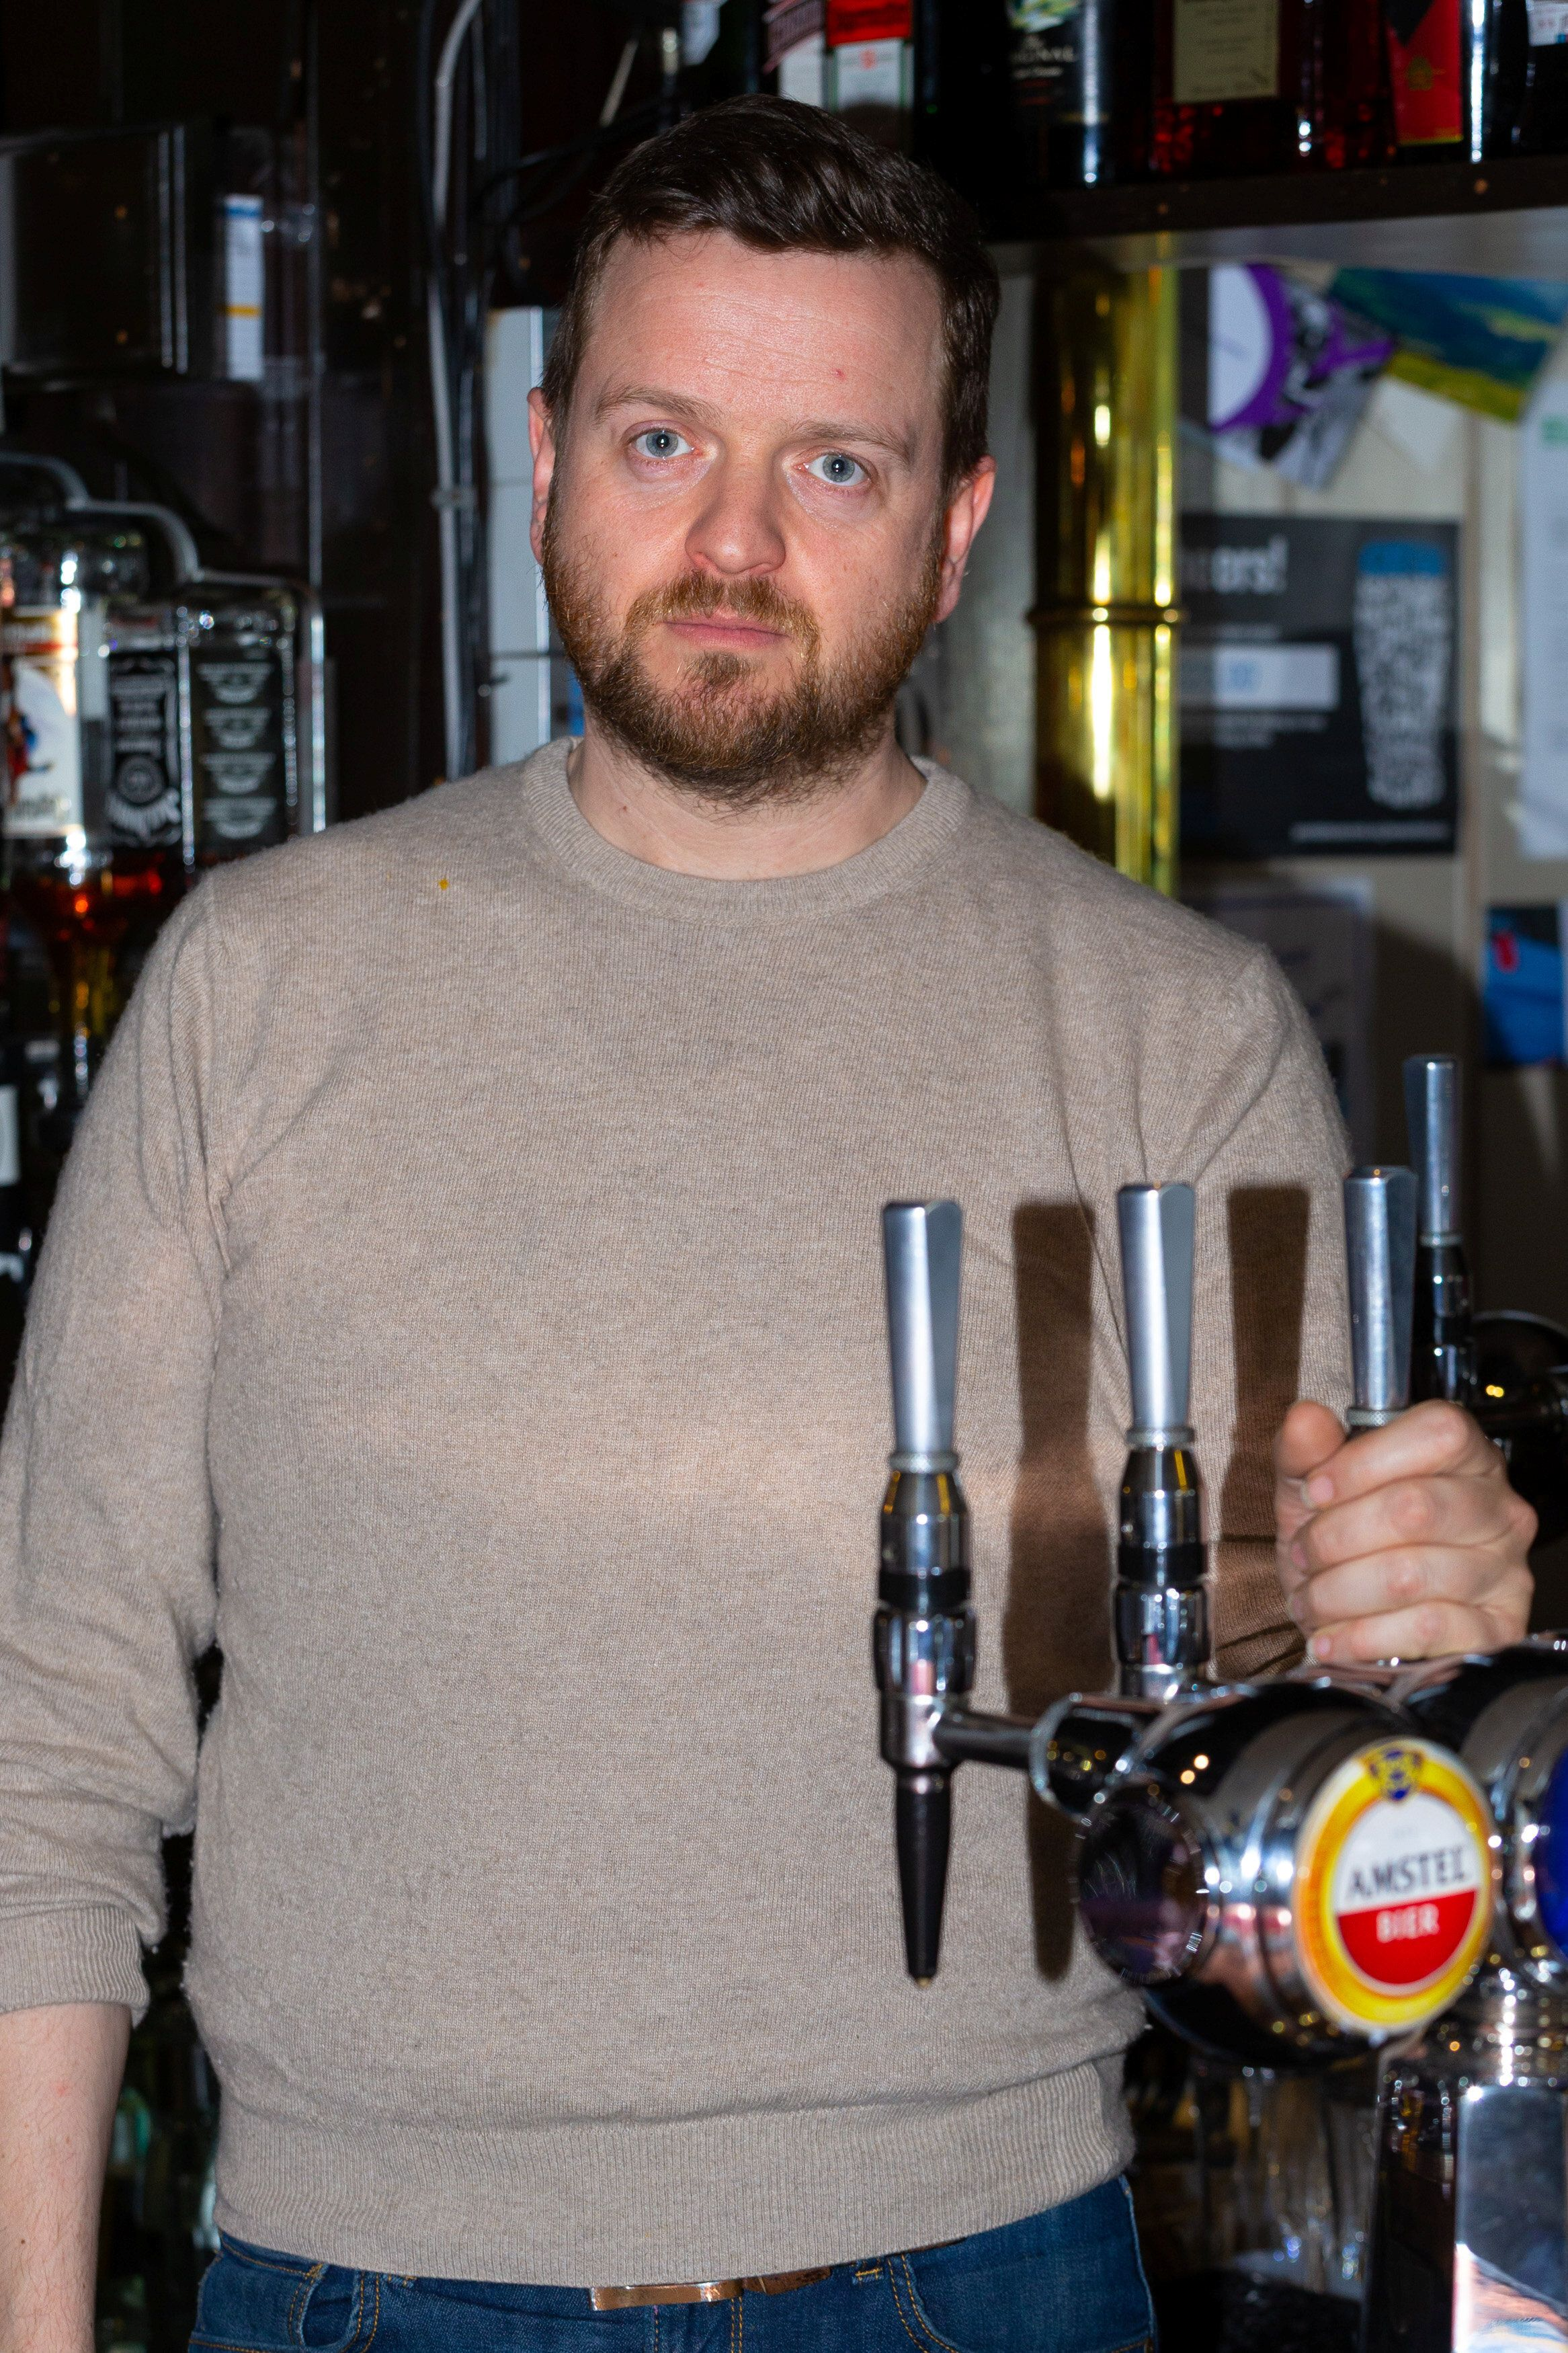 **PICTURE RELEASED FOR SUNDAY PRINT MEDIA - ONLINE EMBARGO UNTIL 6.00AM / SUNDAY 12 MAY, 2019**  Pub landlord Patrick Trenter, 38, at his pub the George and Dragon in Westerham, Kent. See SWNS story SWSYfarage. Former UKIP leader Nigel Farage has been banned from his local pub after he allegedly made a swift exit when he was involved in a head on crash with the landlord. Patrick Tranter, 38, was driving home with his one-year-old son when his Jaguar was hit by Farage's Range Rover, he claims. But instead of checking on Patrick and his son, the Eurosceptic MEP is said to have fled the scene. Patrick and his shaken baby son George were taken to hospital in an ambulance, and he claims his car has been written off.